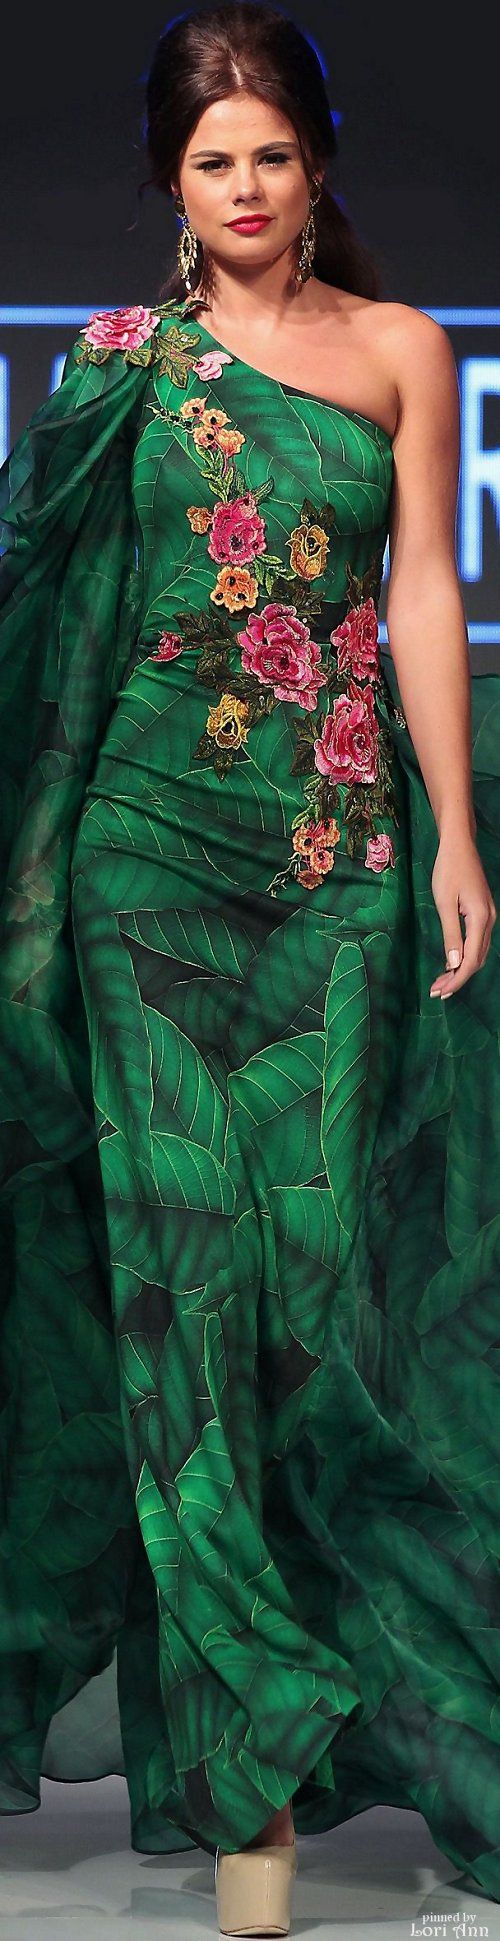 Fouad Sarkis Spring 2016 RTW etsy.com/your/shops/SowingAcorns St. Patricks day silk scarves, handmade, every fashionista owns one. Great accessory for any outfit in your womens closet or board. Custom orders available green, pink, blue, yellow, orange, purple, gray and black.